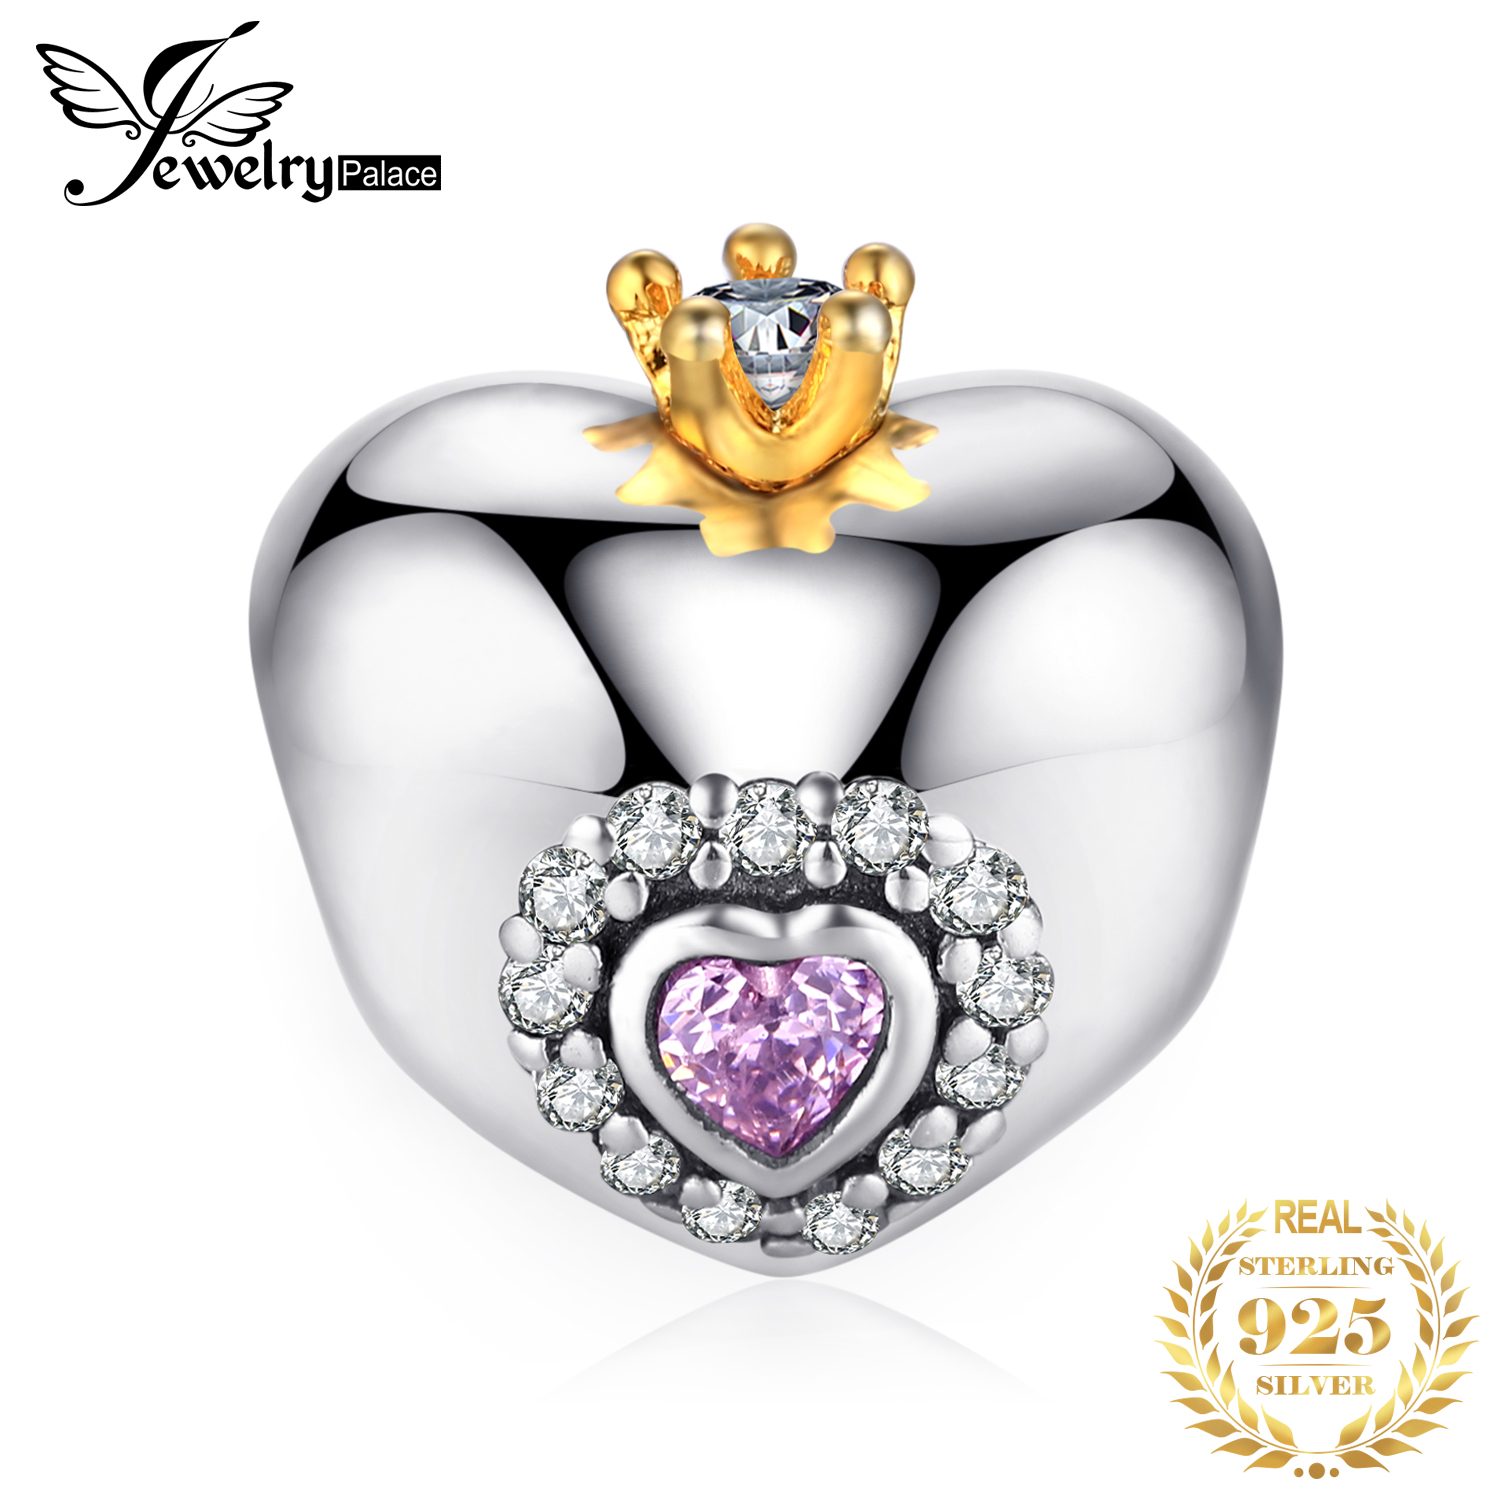 JewelryPalace Crown Heart 925 Sterling Silver Beads Charms Silver 925 Original For Bracelet Silver 925 Original Jewelry Making